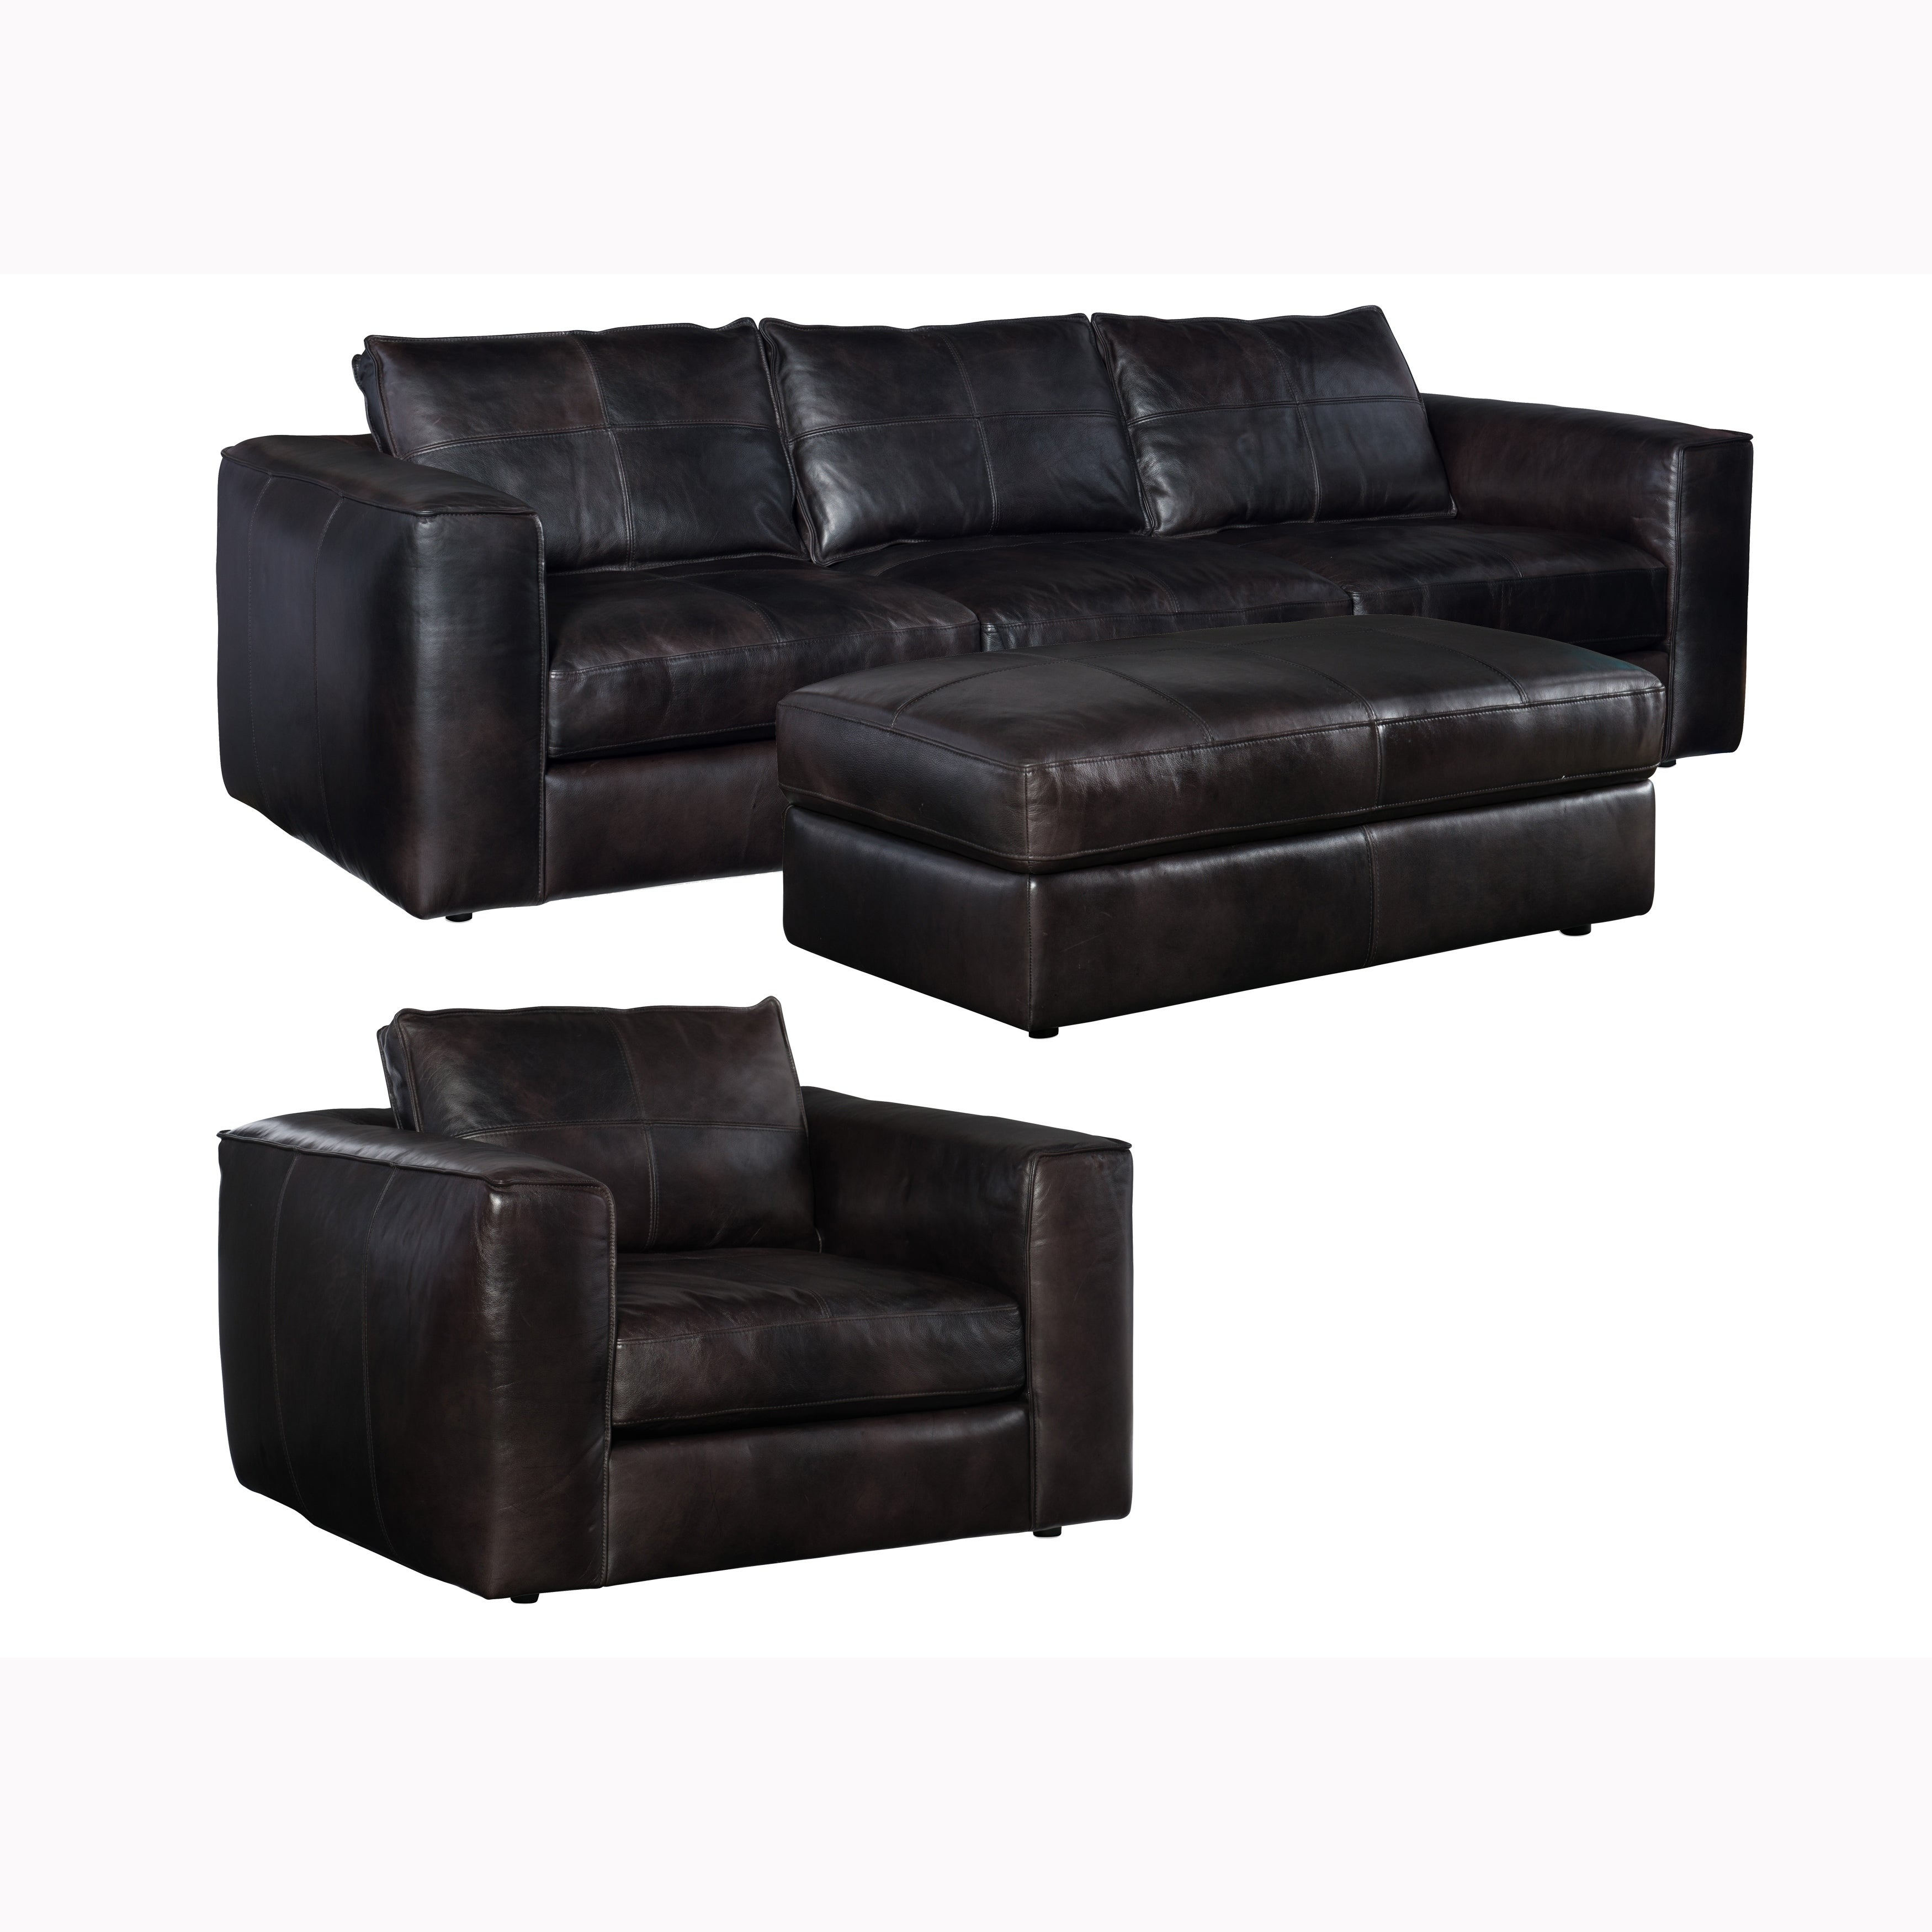 Picture of: Latitude Distressed Black Leather Sofa Chair And Storage Ottoman On Sale Overstock 28820206